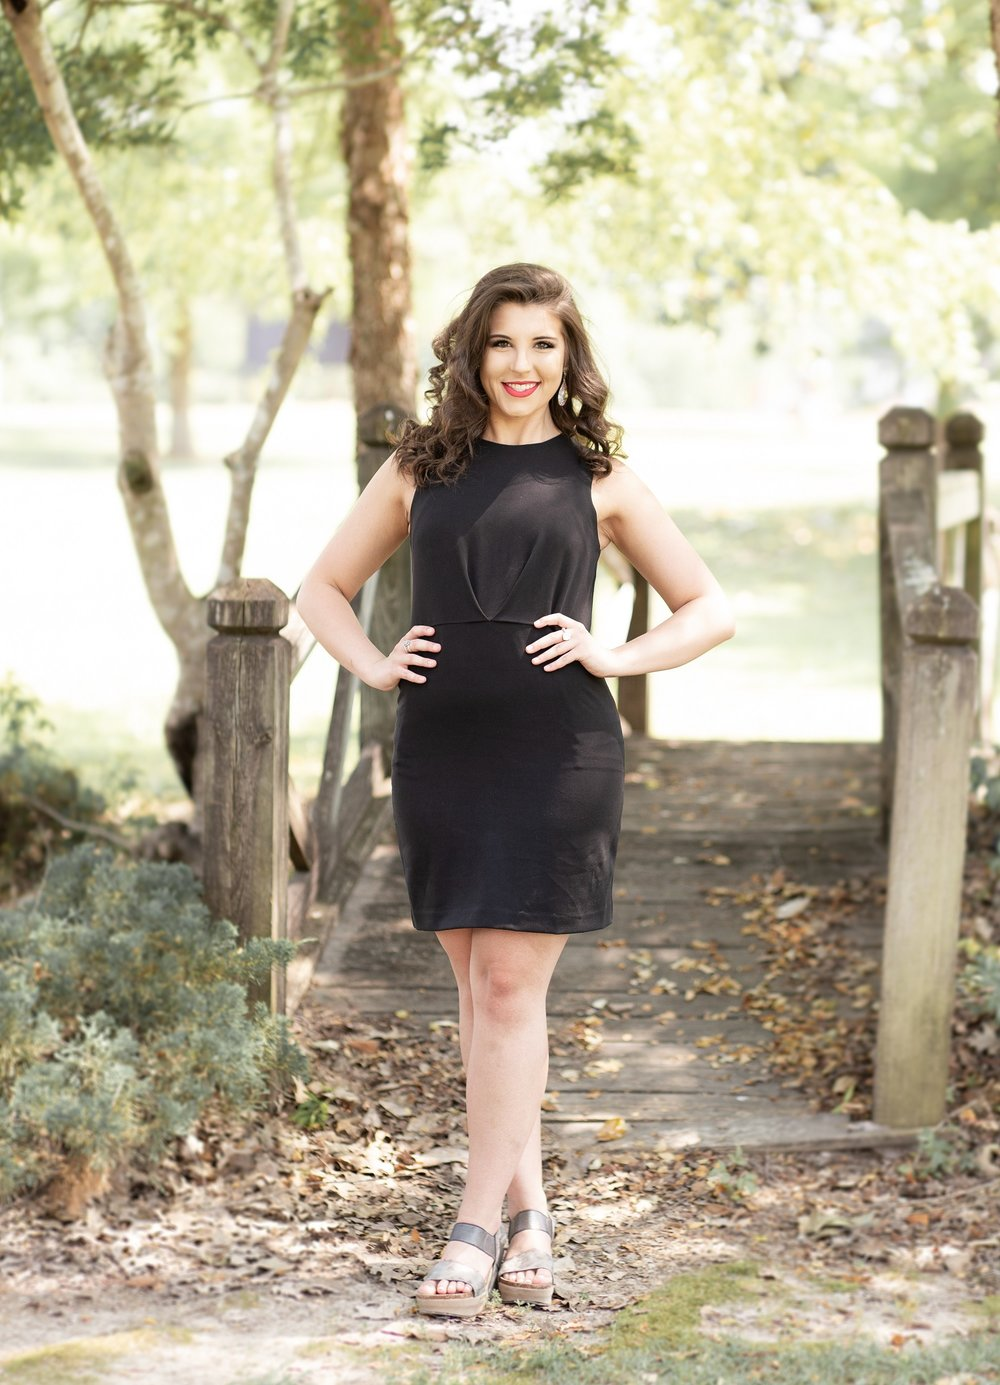 Erin Perry Cap & Gown Session-17.jpg